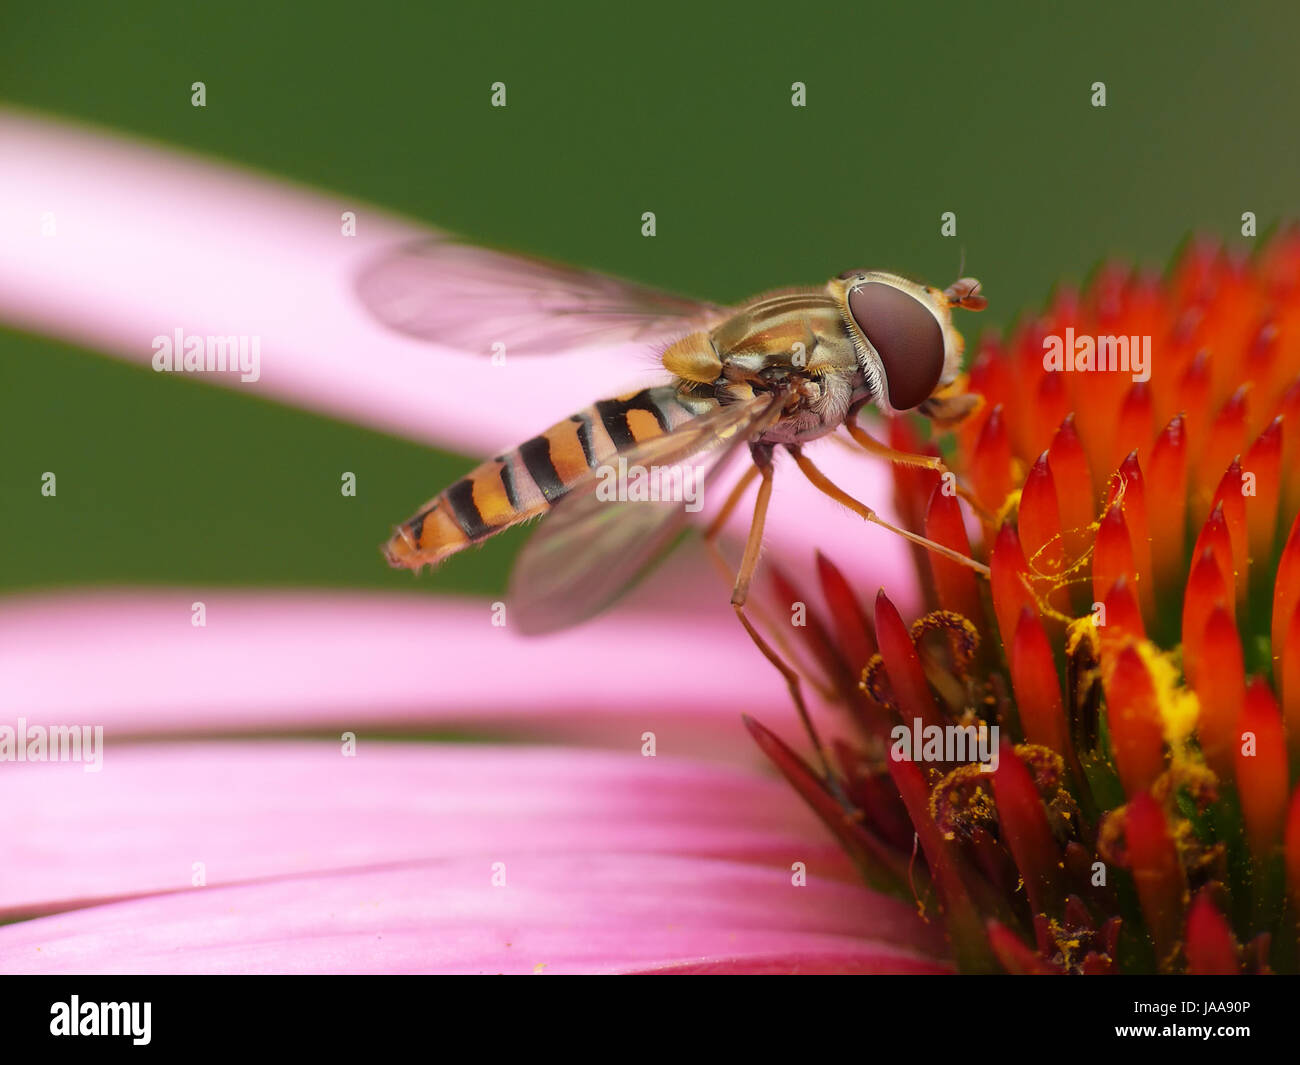 macro, close-up, macro admission, close up view, insect, fauna, bloom, blossom, - Stock Image